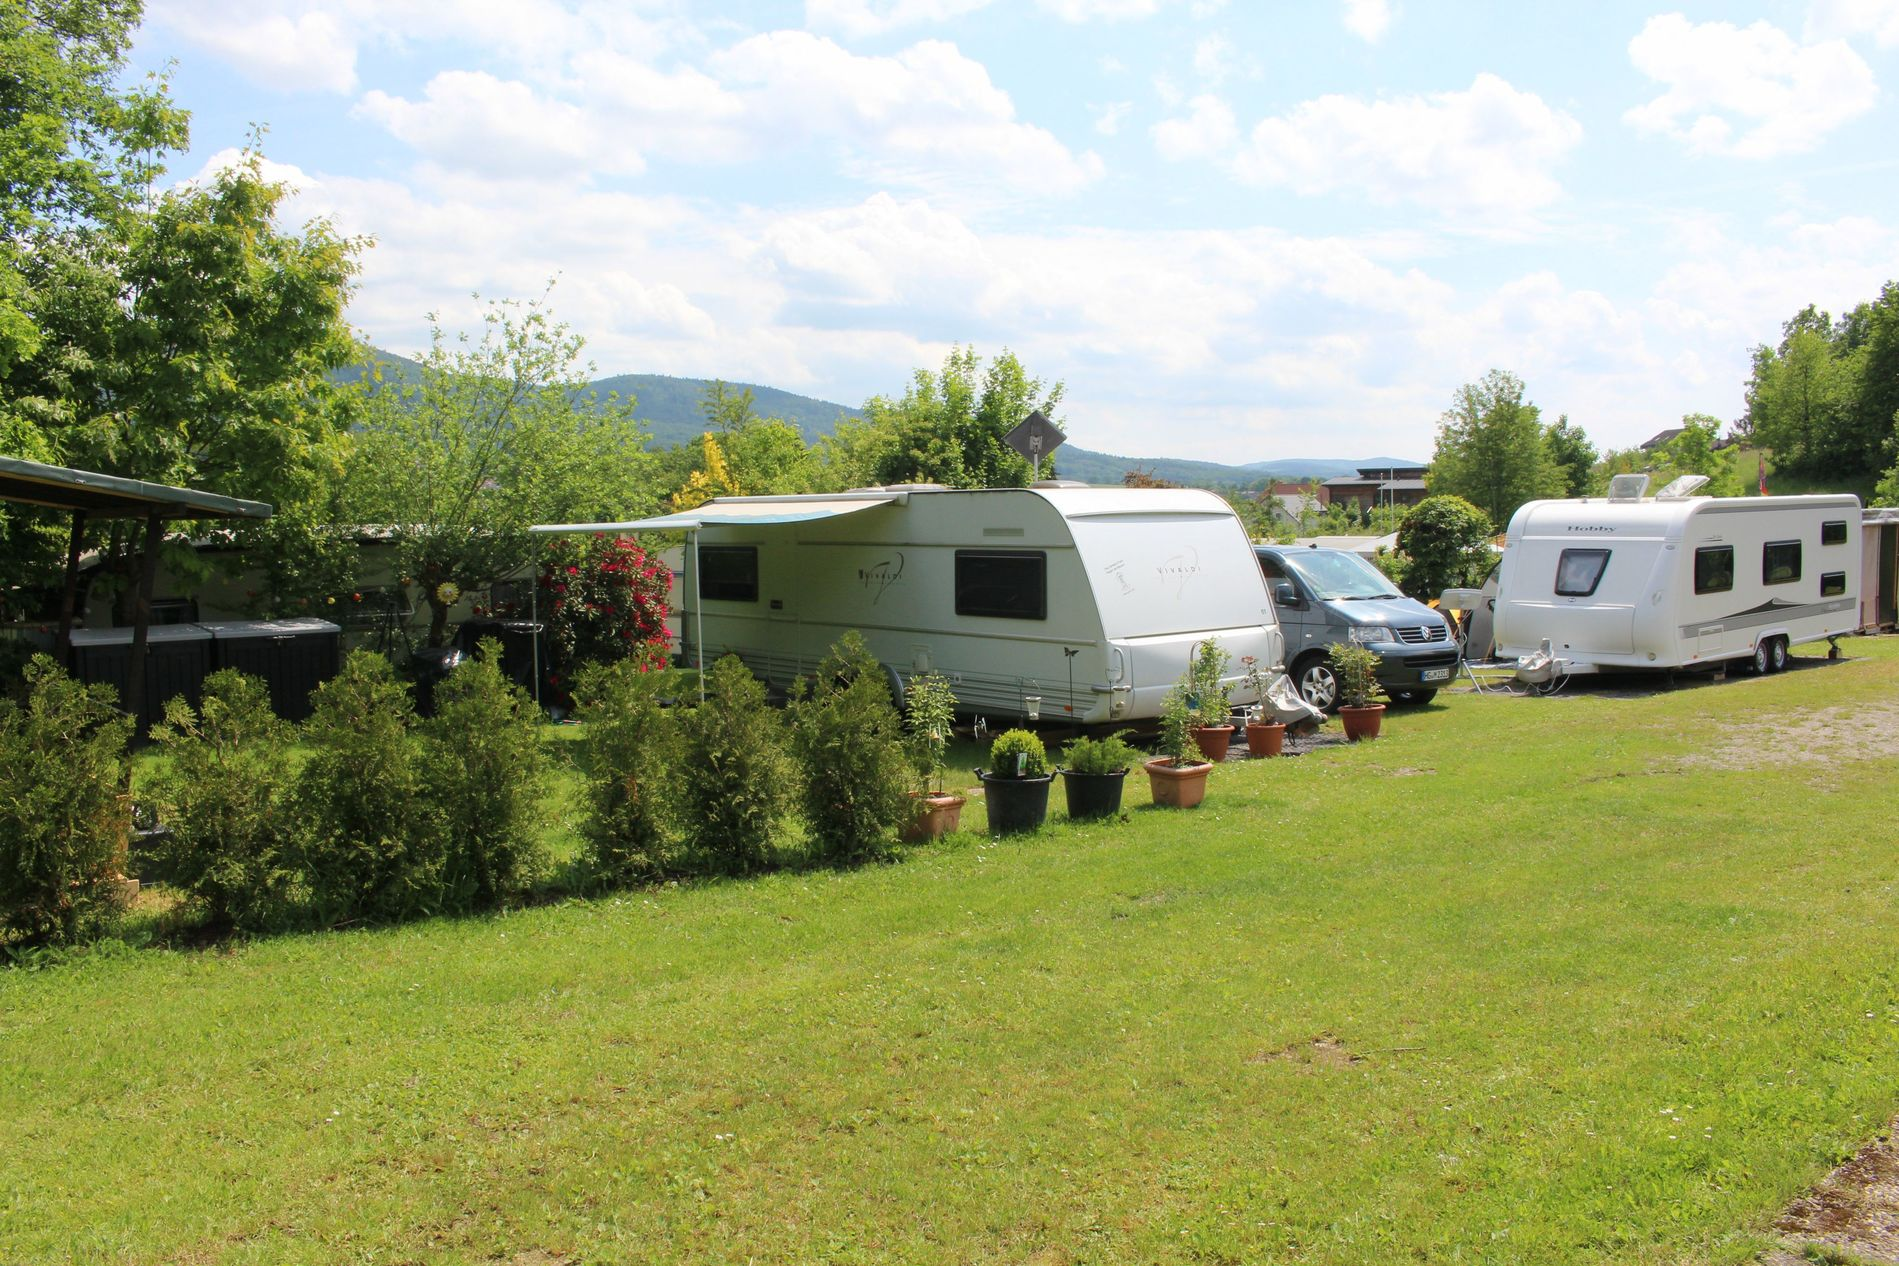 Duitsland-Furth-NibelungenCamping%20am%20Schwimmbad-ExtraLarge Campings Duitsland